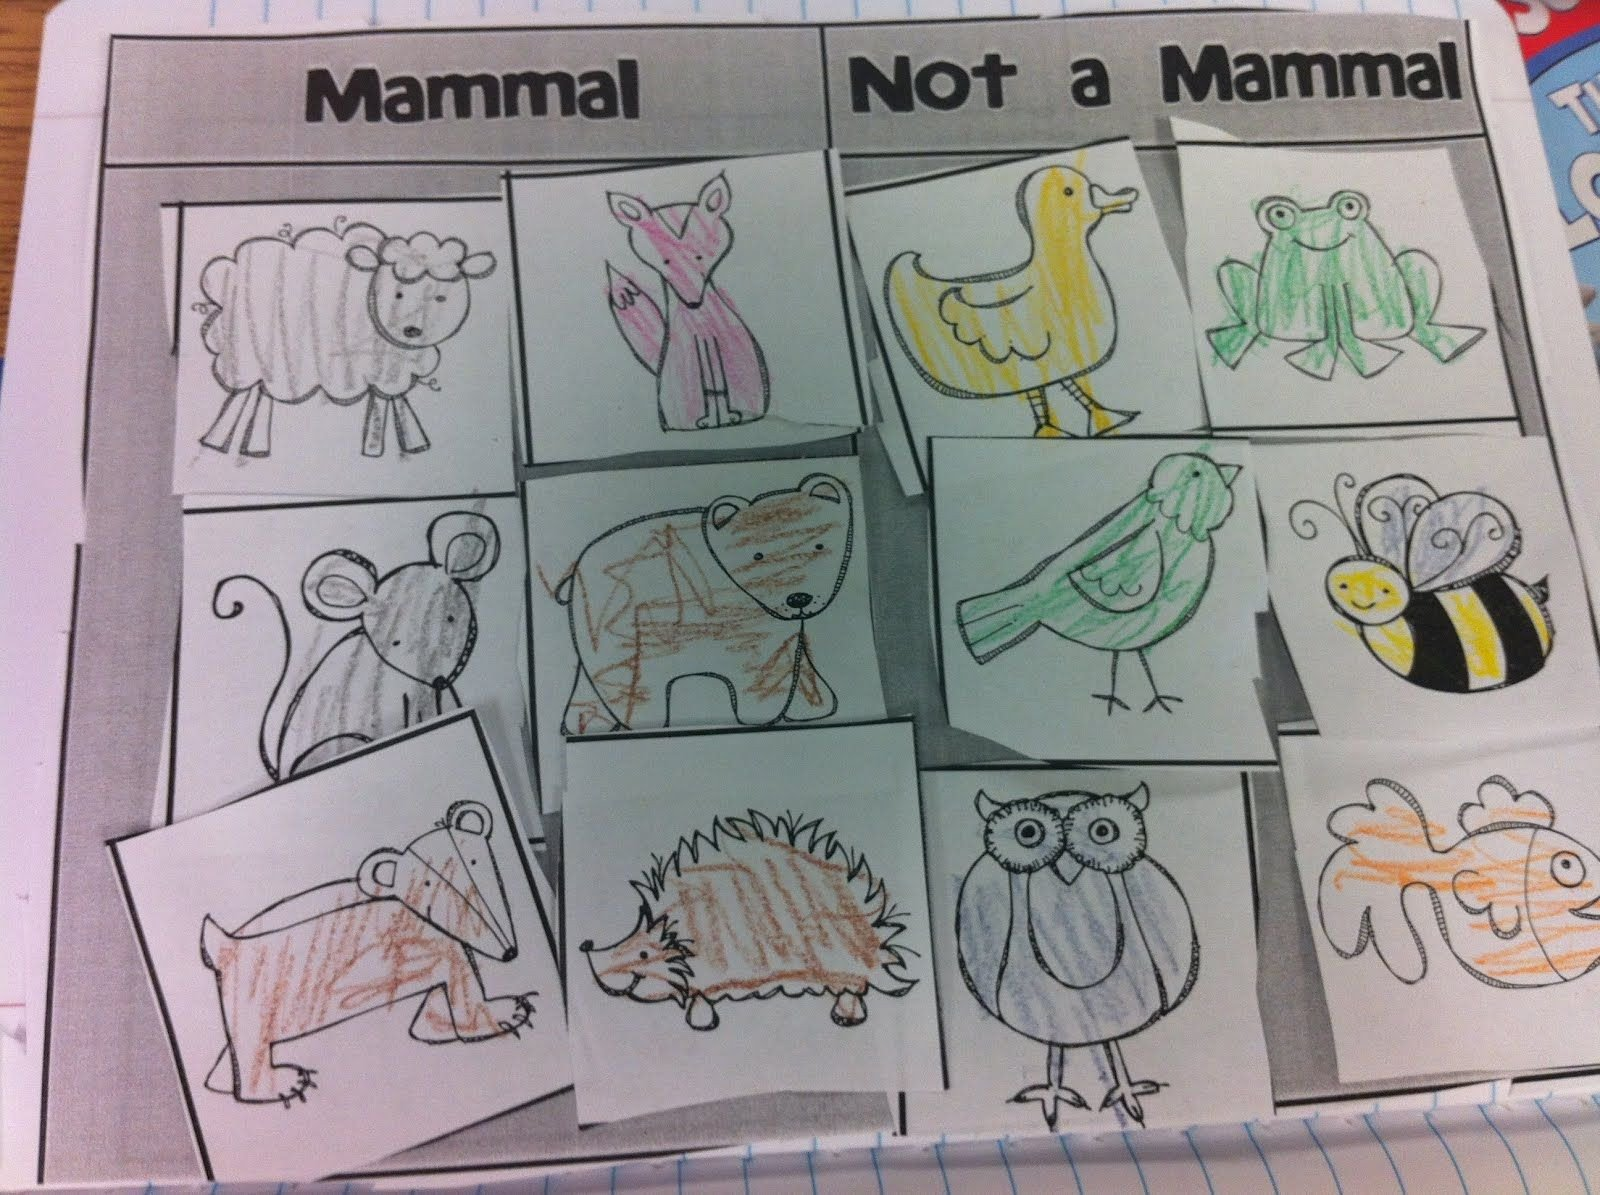 Mammal Worksheets First Grade Mammals and Not Mammals sort